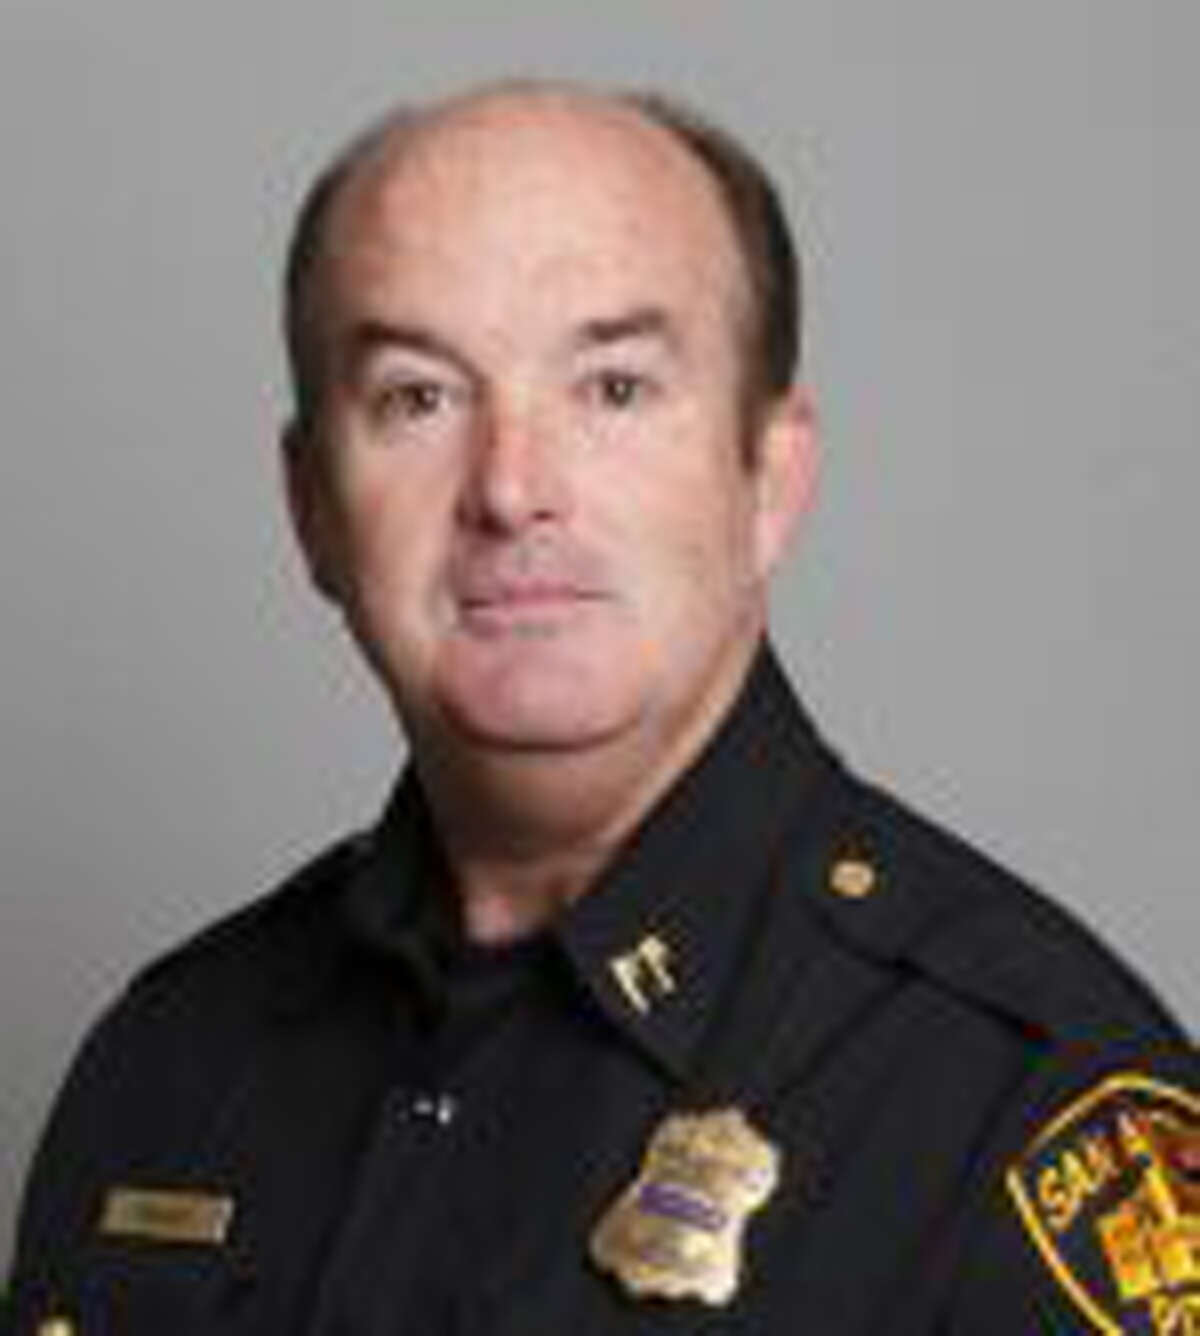 Deputy Chief Joseph MacKay, who was just officially appointed to the position overseeing the investigations division of SAPD. Courtesy photo